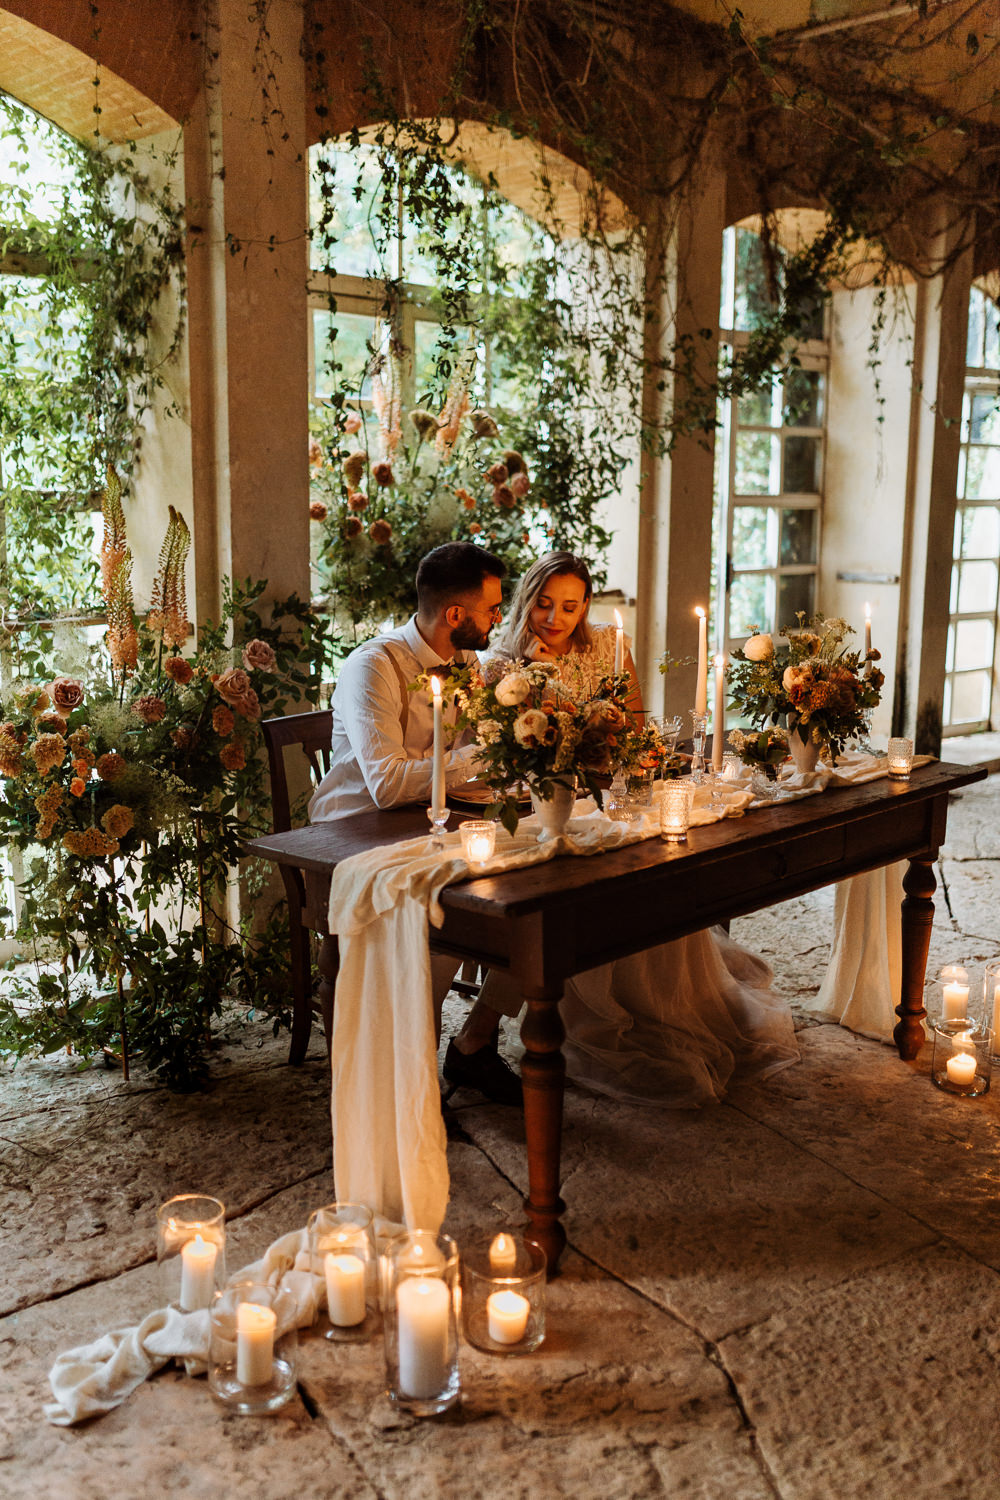 Natural Wedding Ideas Frame Of Love Greenhouse Decor Candles Table Tablescape Decor Peach Wild Flowers Greenery